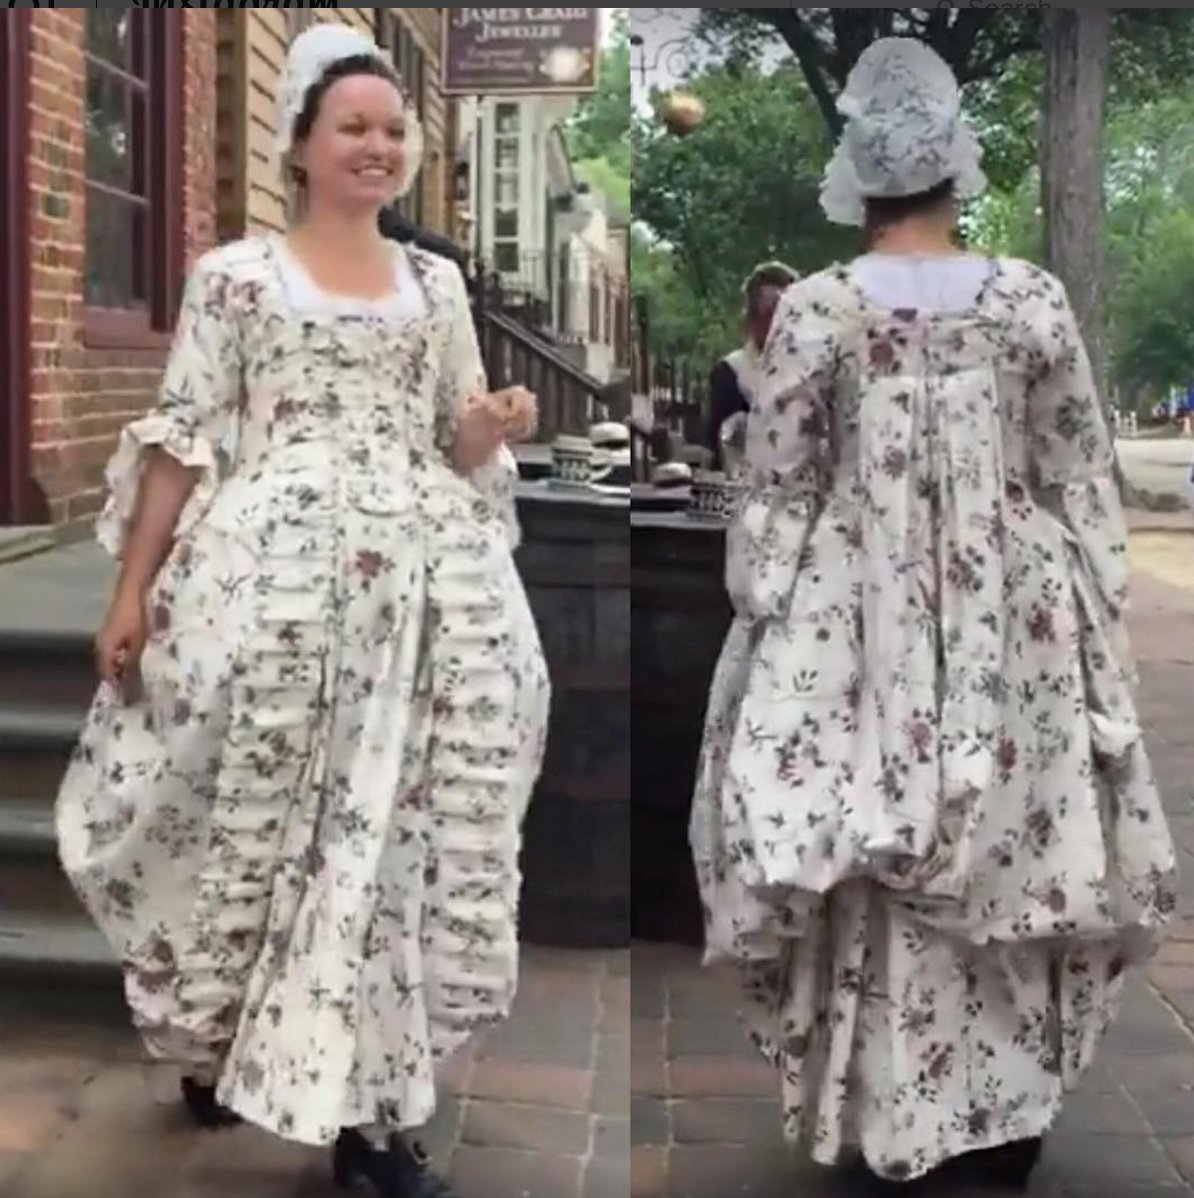 Congratulations to the mantua-makers @colonialwmsburg who hand-stitched this 18thc #dressinaday today! https://t.co/ziIXA9aCIU